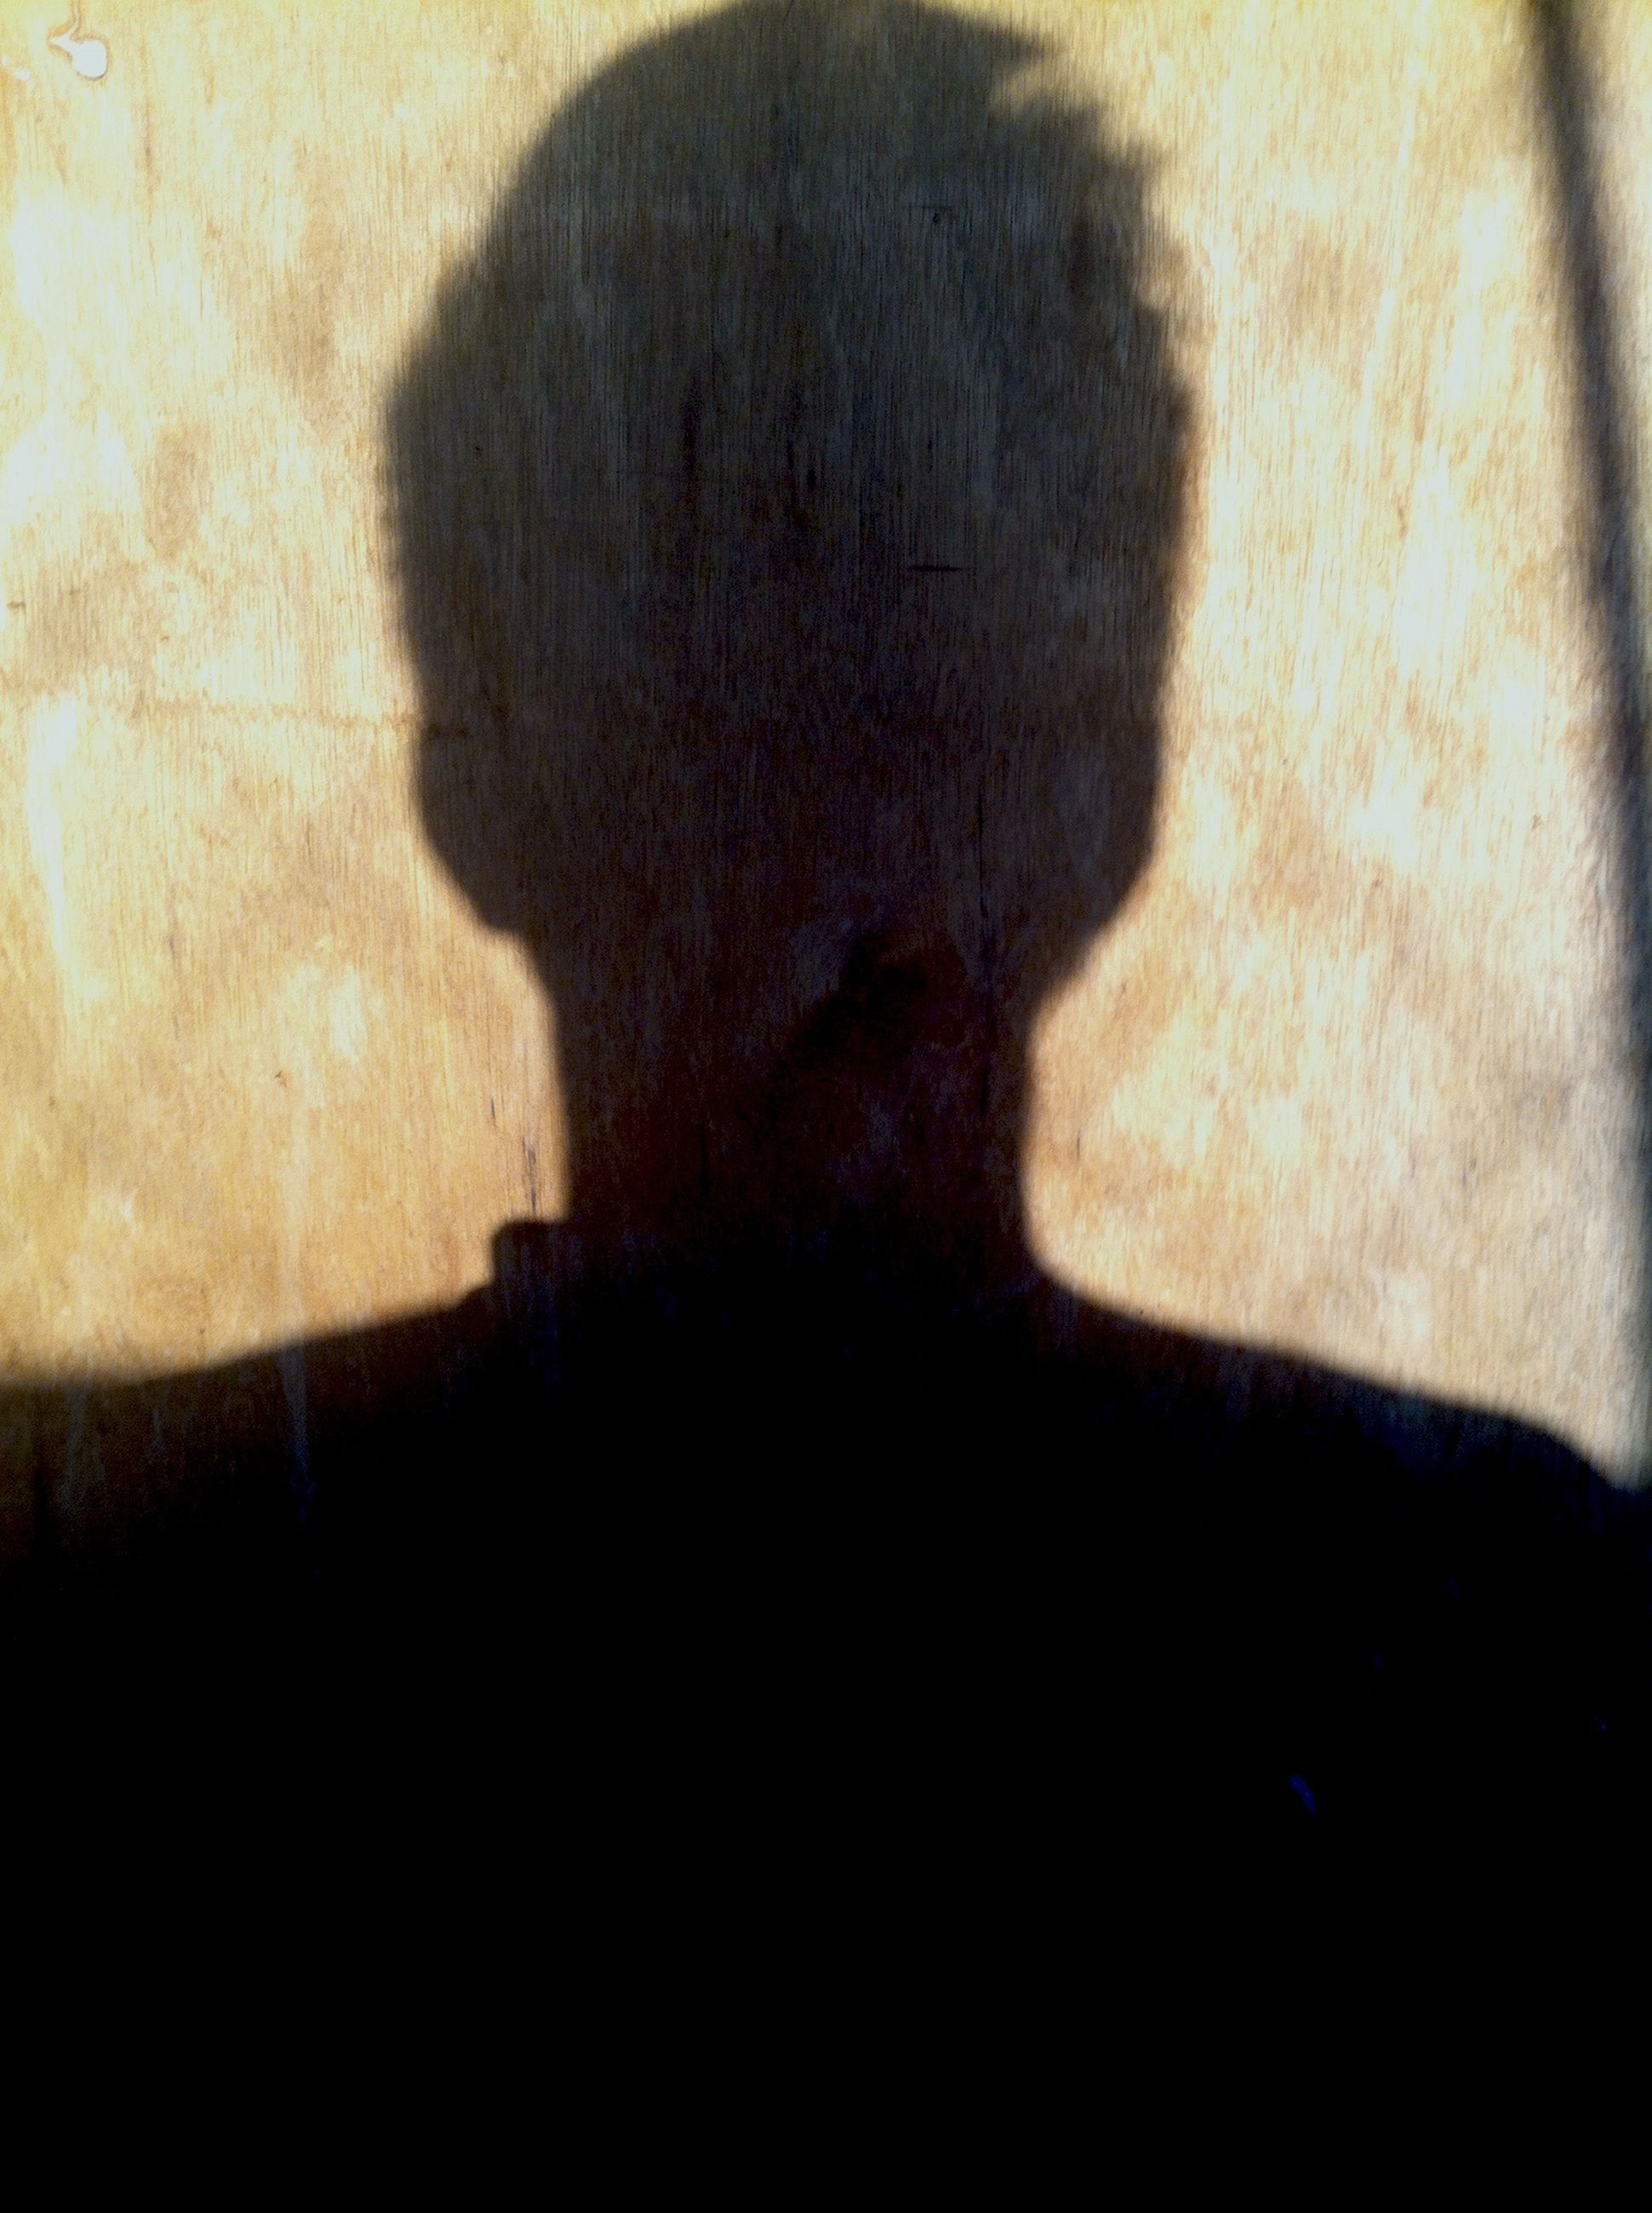 indoors, shadow, wall - building feature, silhouette, focus on shadow, human representation, wall, sunlight, no people, dark, home interior, art and craft, day, close-up, art, copy space, statue, built structure, creativity, mystery